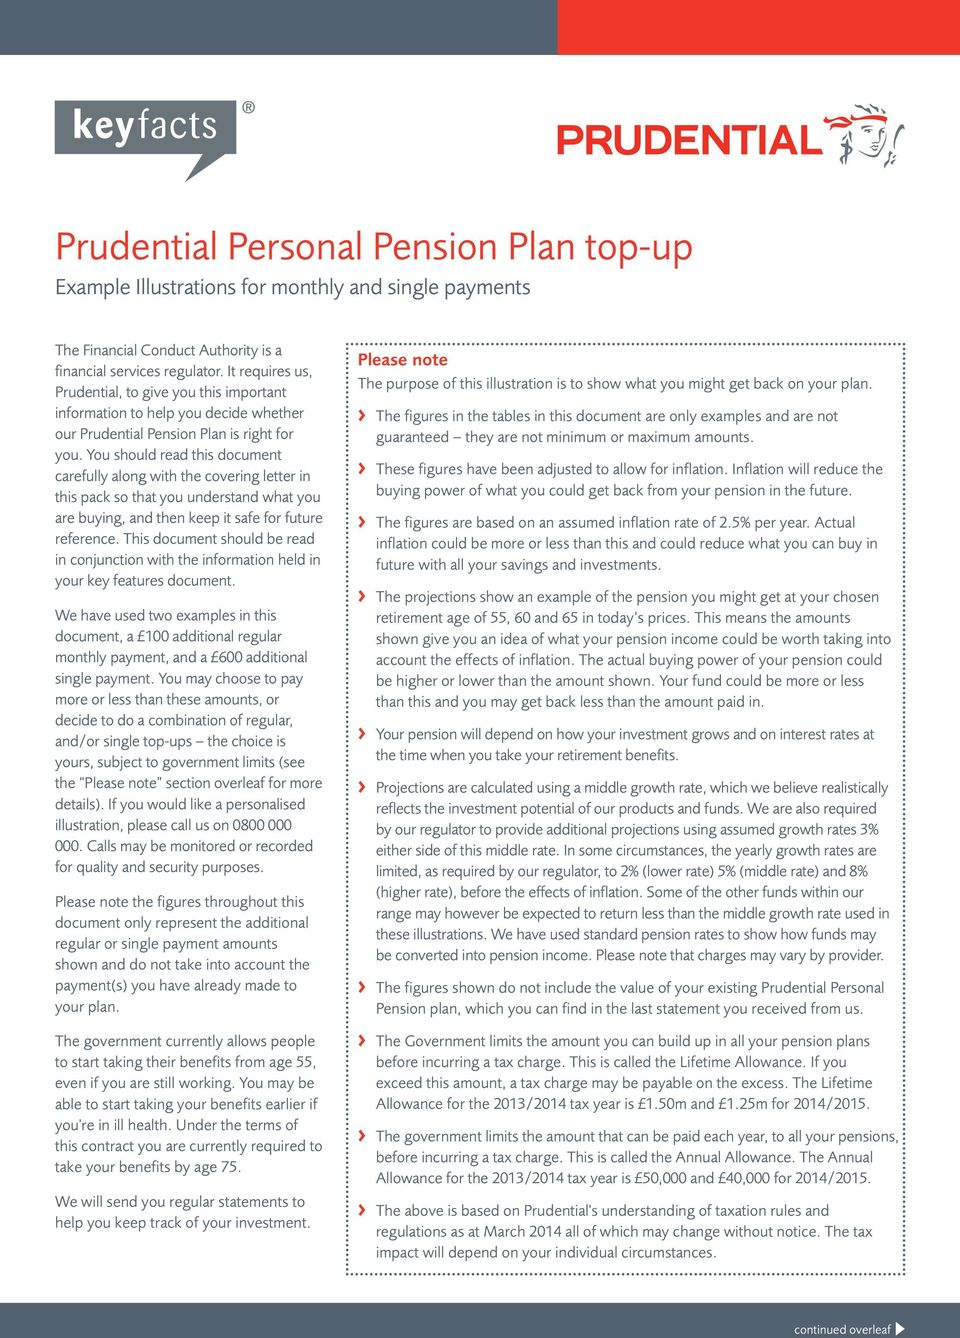 prudential regulations